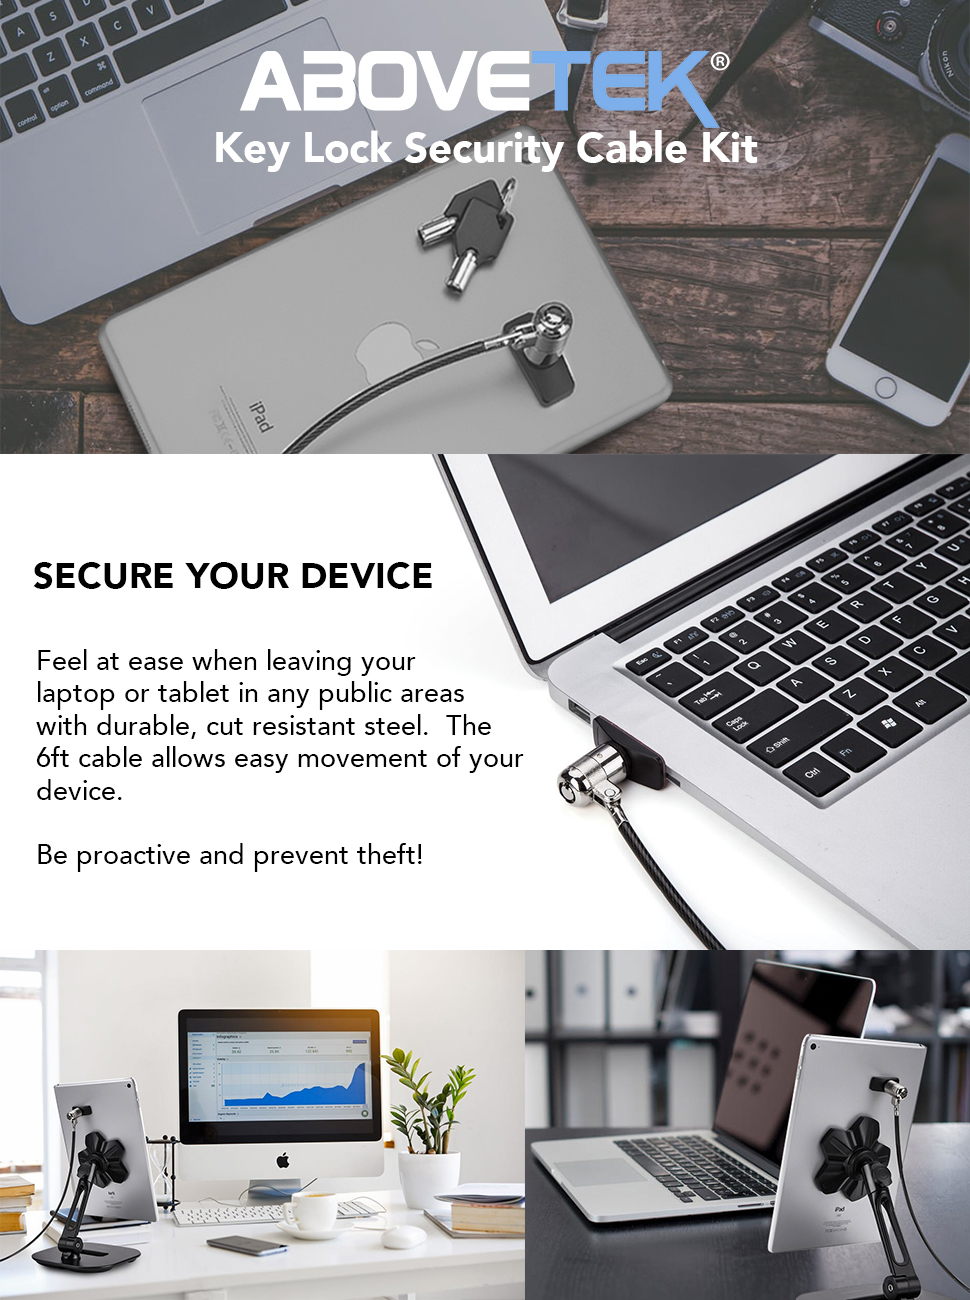 Pro Laptop Hardware Security Safety Cable Lock Anti Theft Lock for iPad Laptop